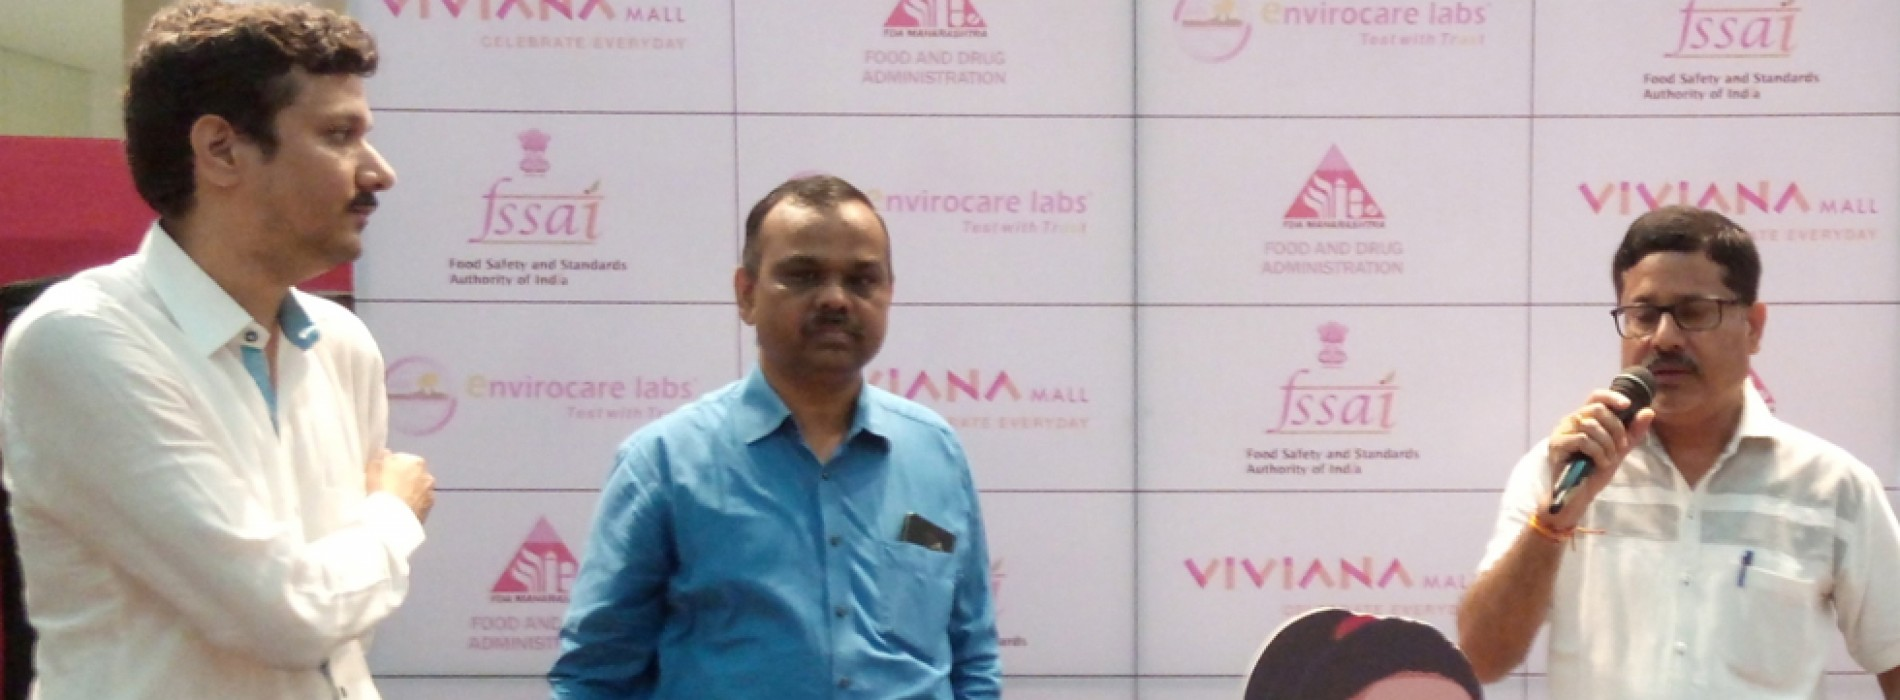 "Viviana Mall becomes first mall in India to conduct ""FOSTAC"" training"